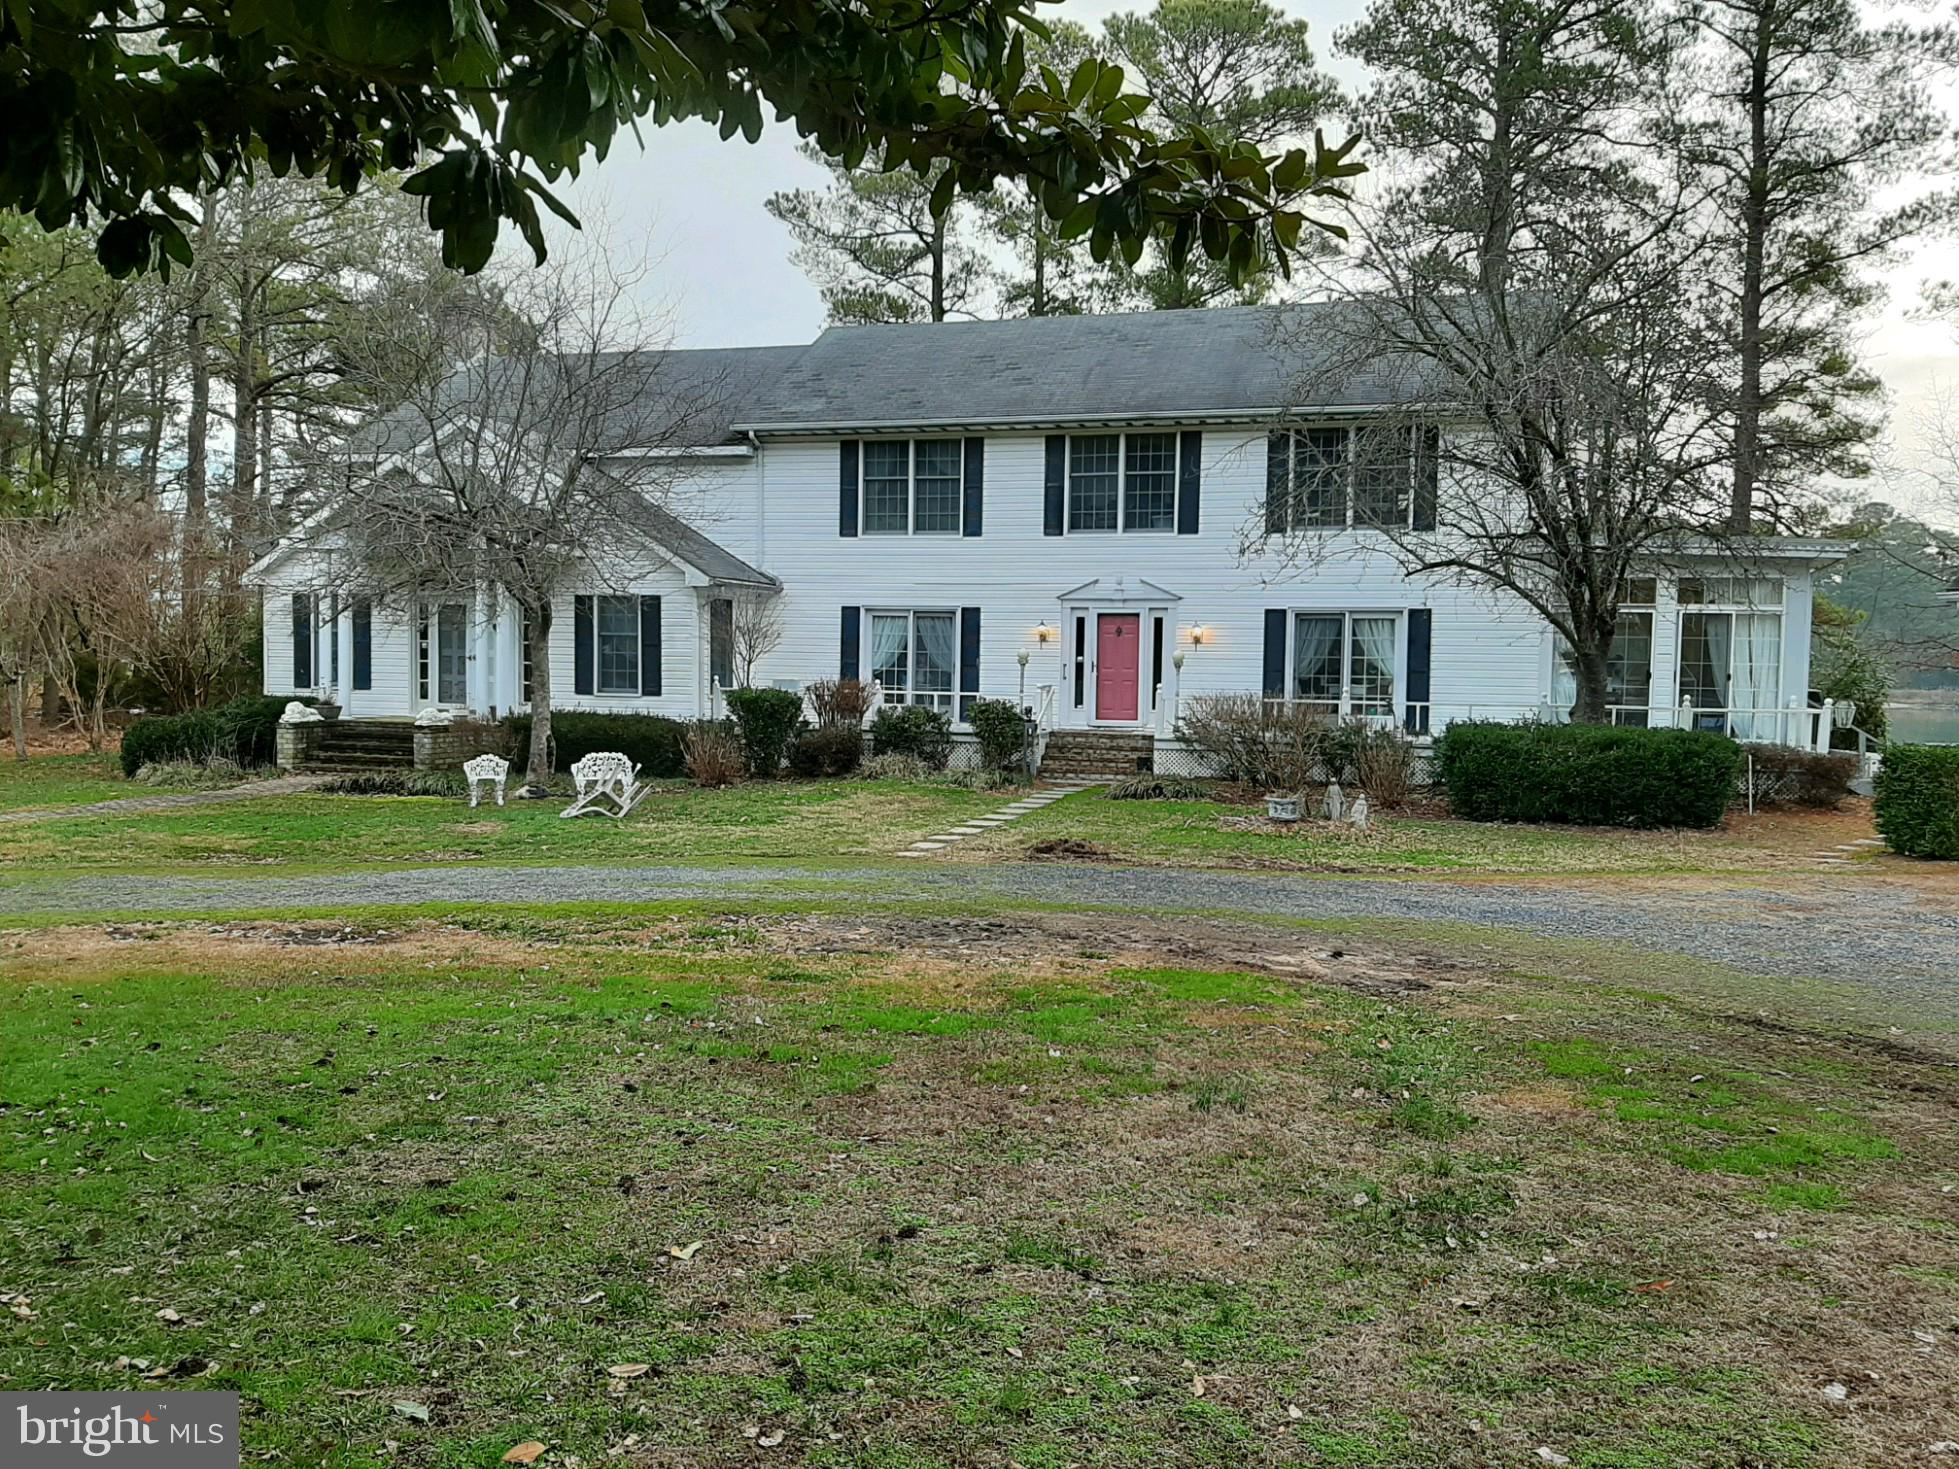 5493 ANDERBY DRIVE, ROYAL OAK, MD 21662